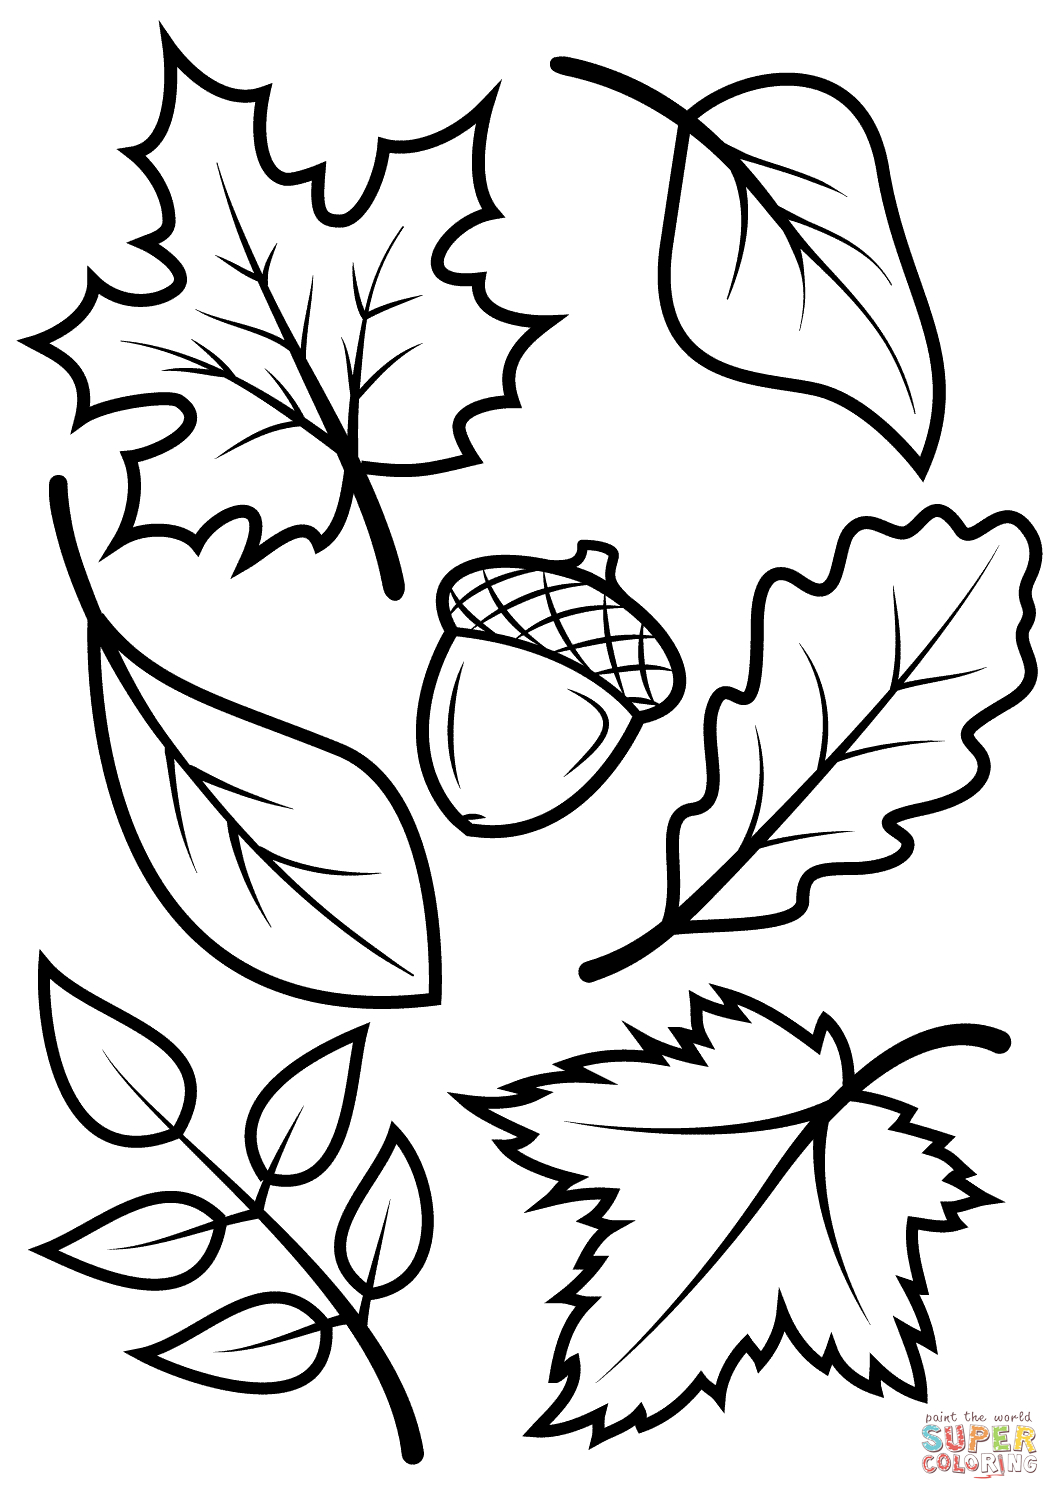 Fall Leaves And Acorn Coloring Page | Free Printable Coloring Pages - Free Printable Autumn Coloring Sheets